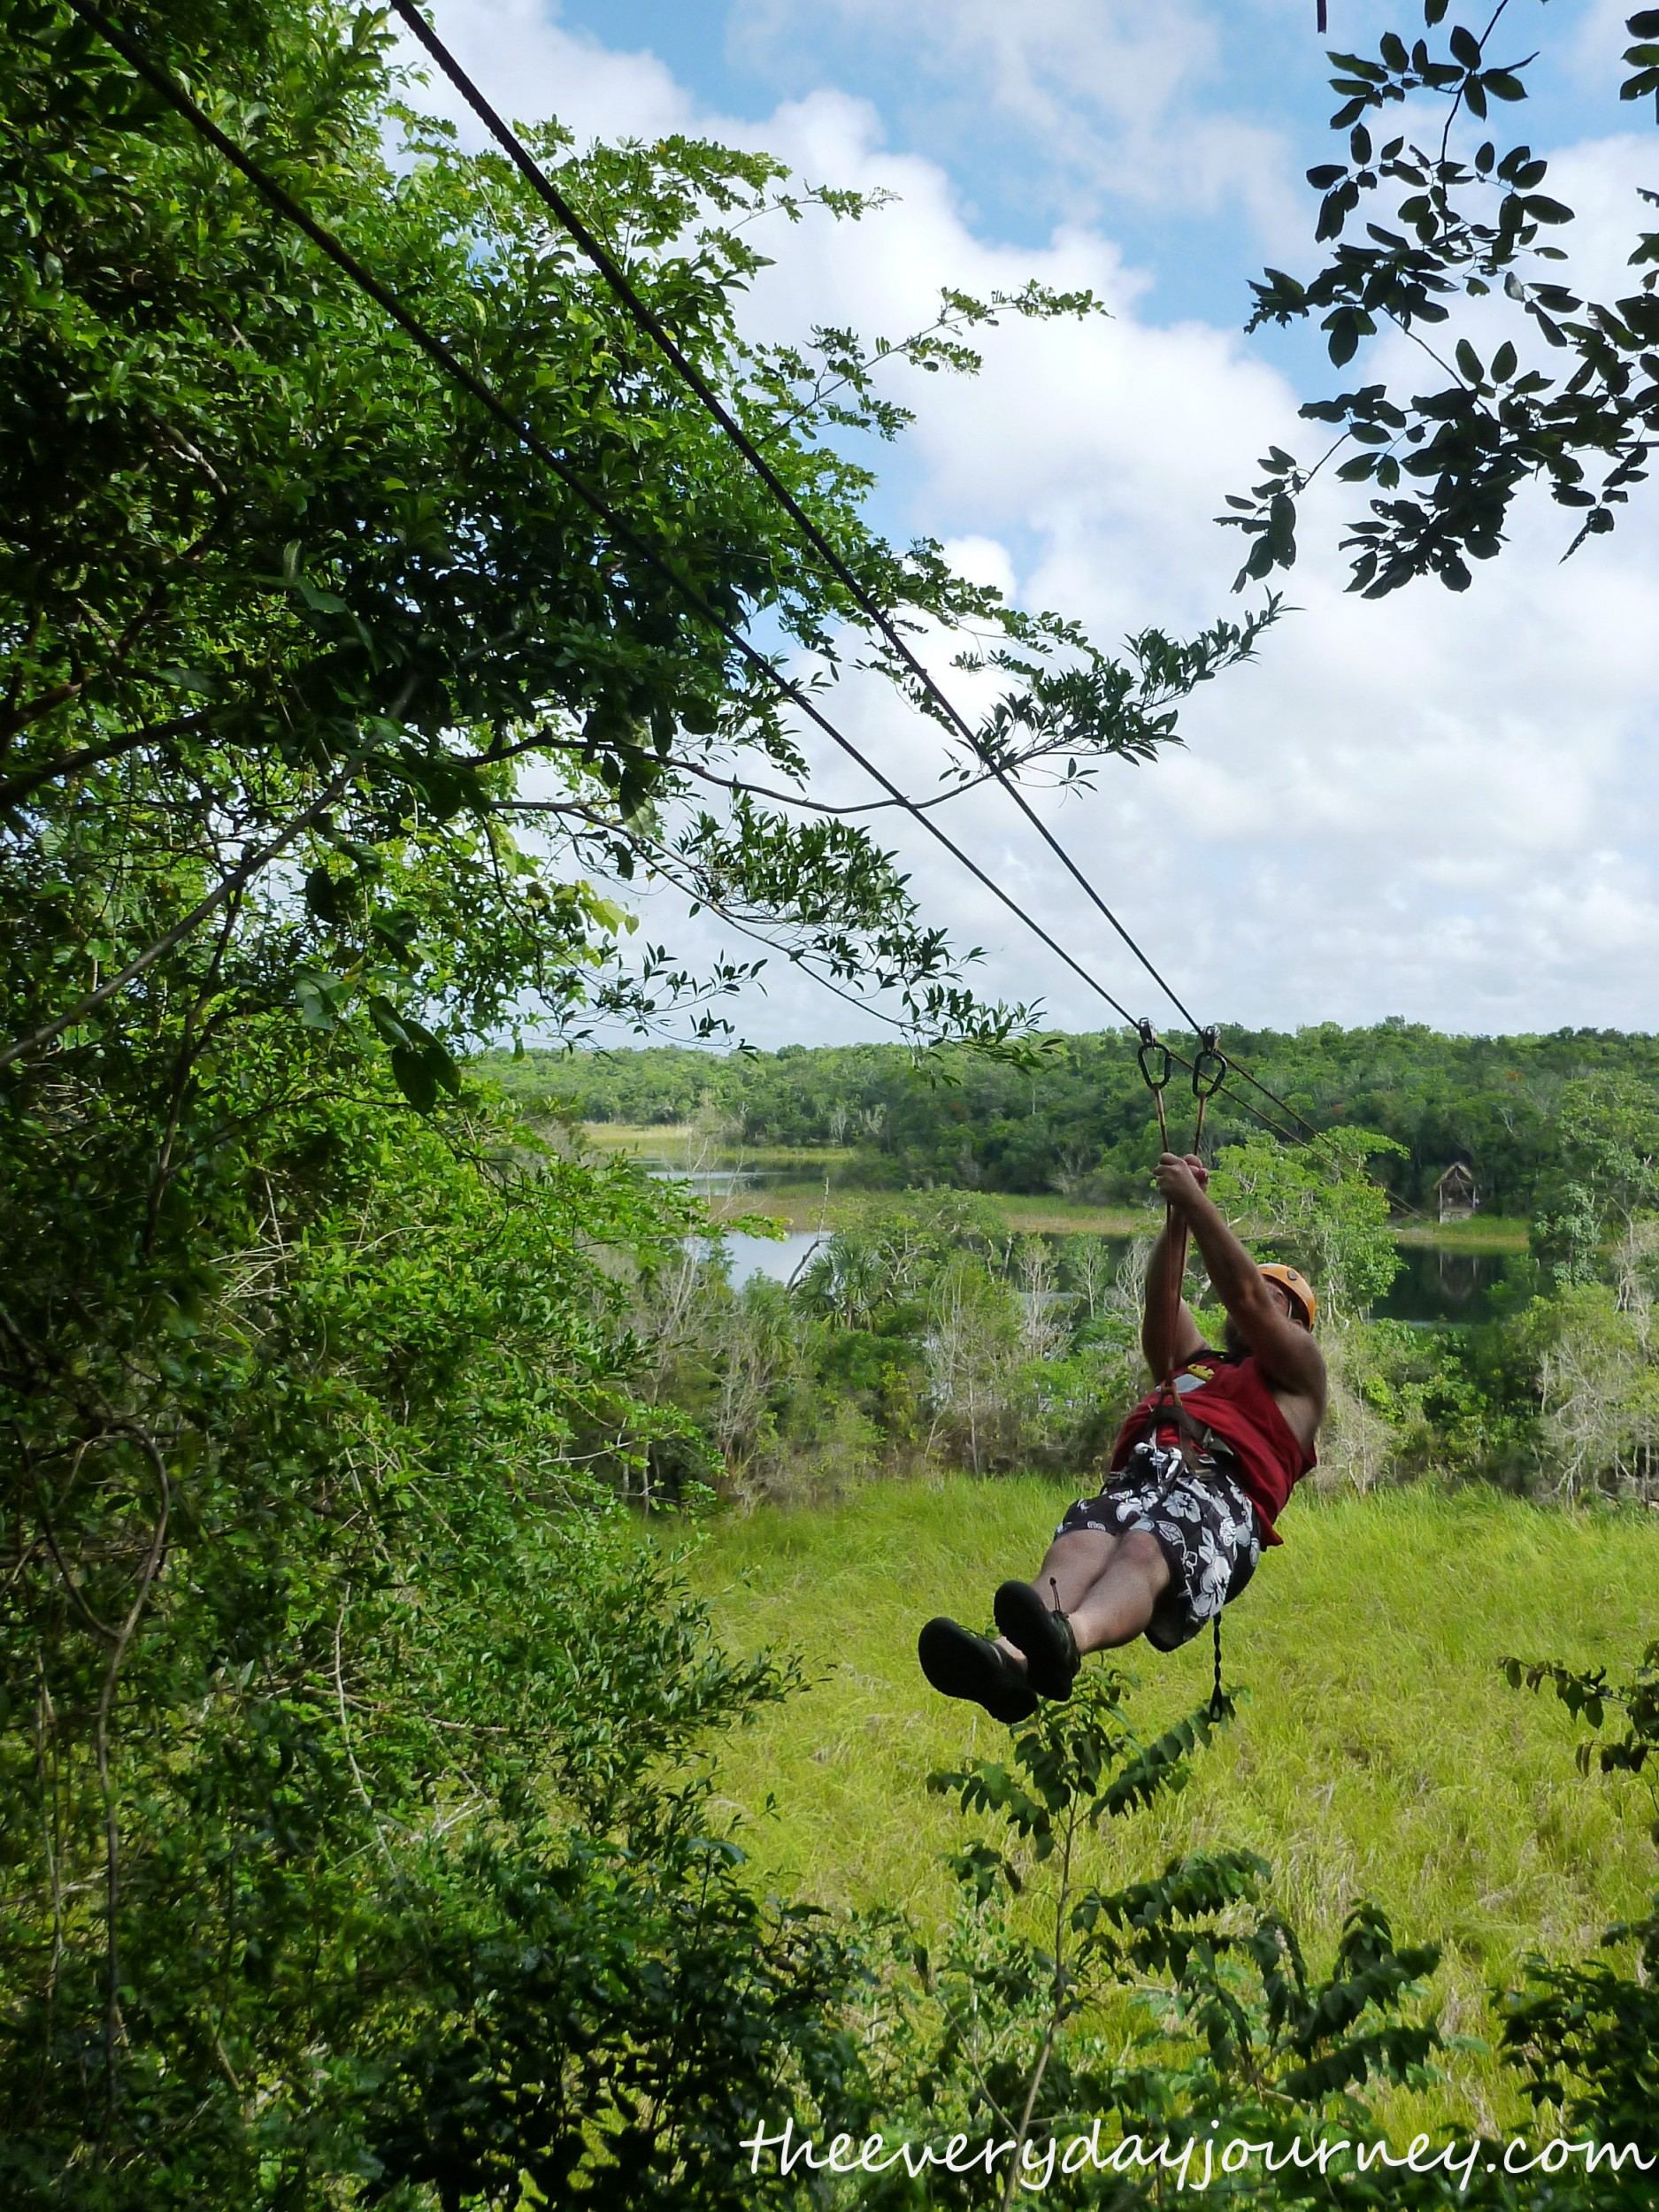 Jason was first in line for zip-lining-he has no fear!